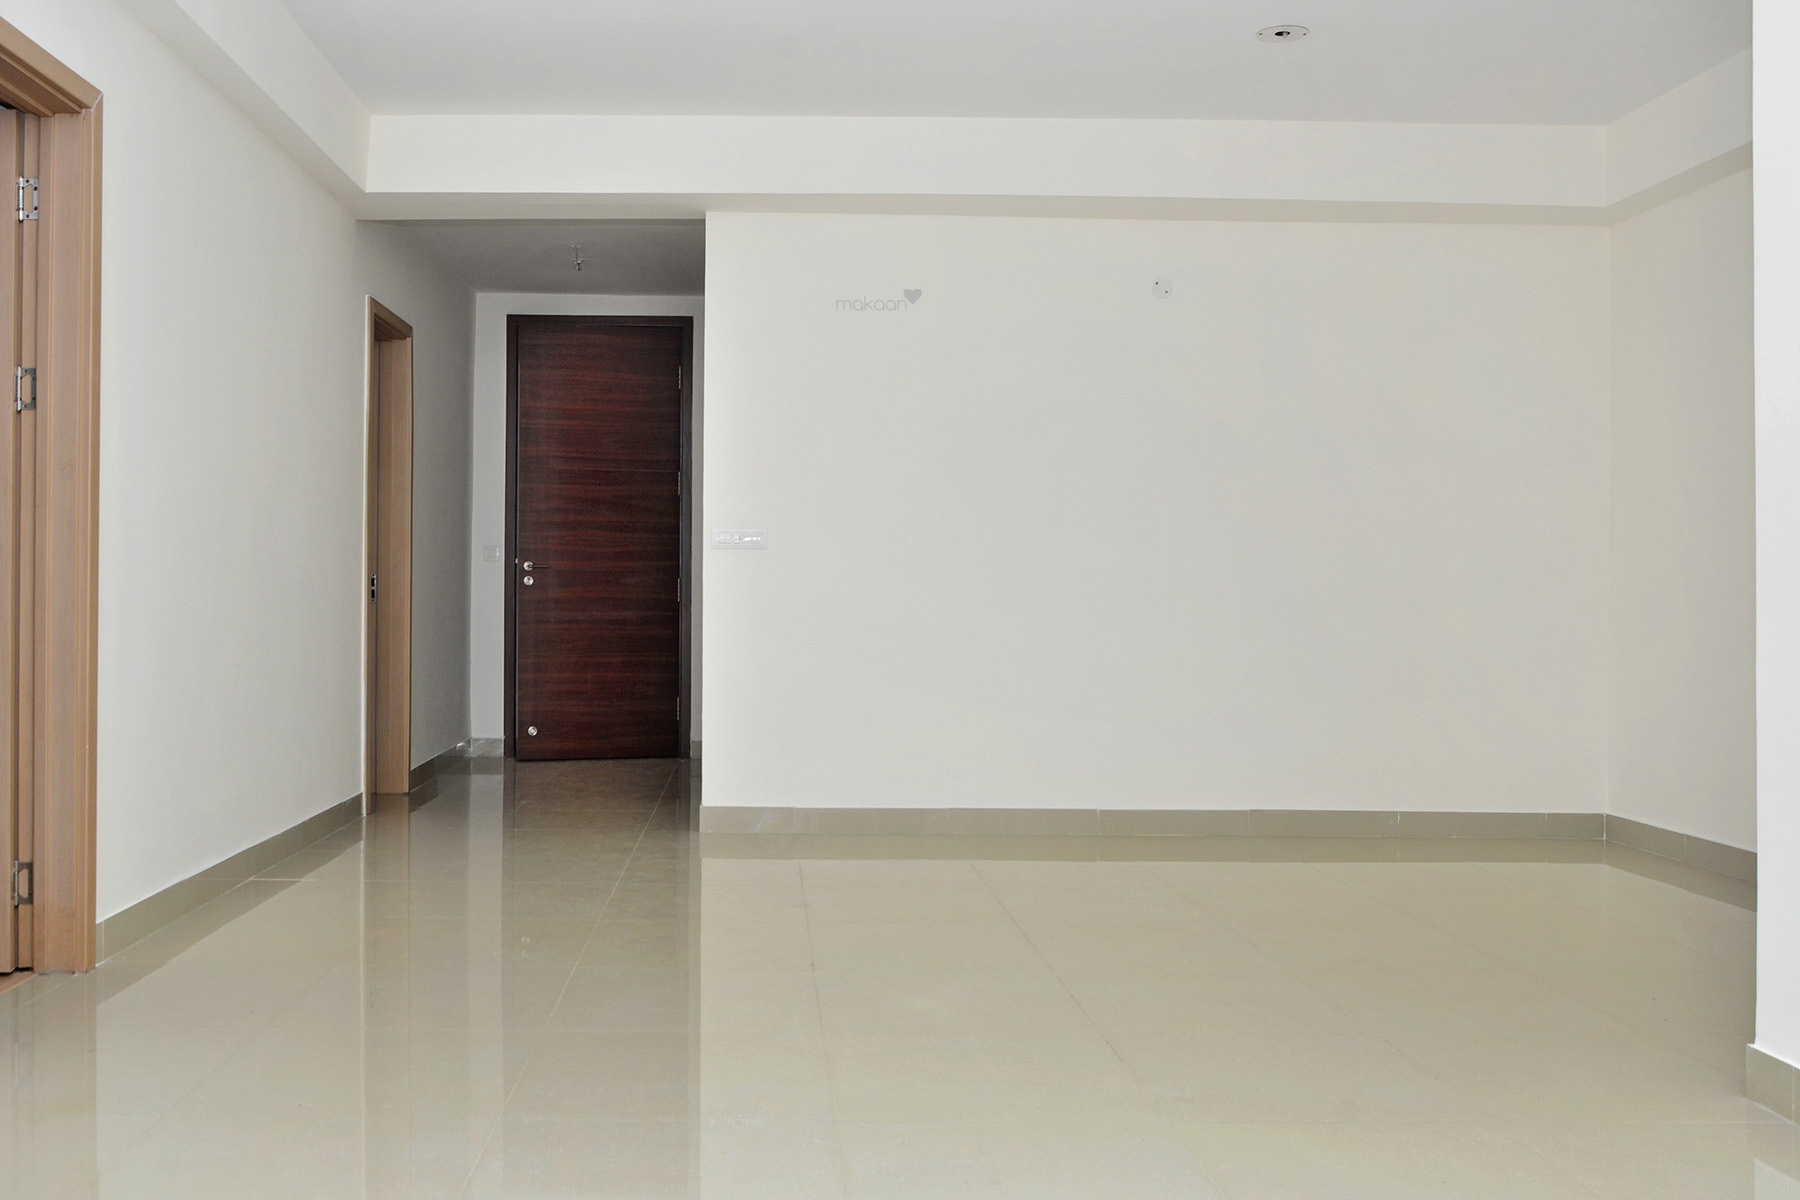 1836 sq ft 3BHK 3BHK+3T (1,836 sq ft) Property By Proptiger In New Town Heights, New Town